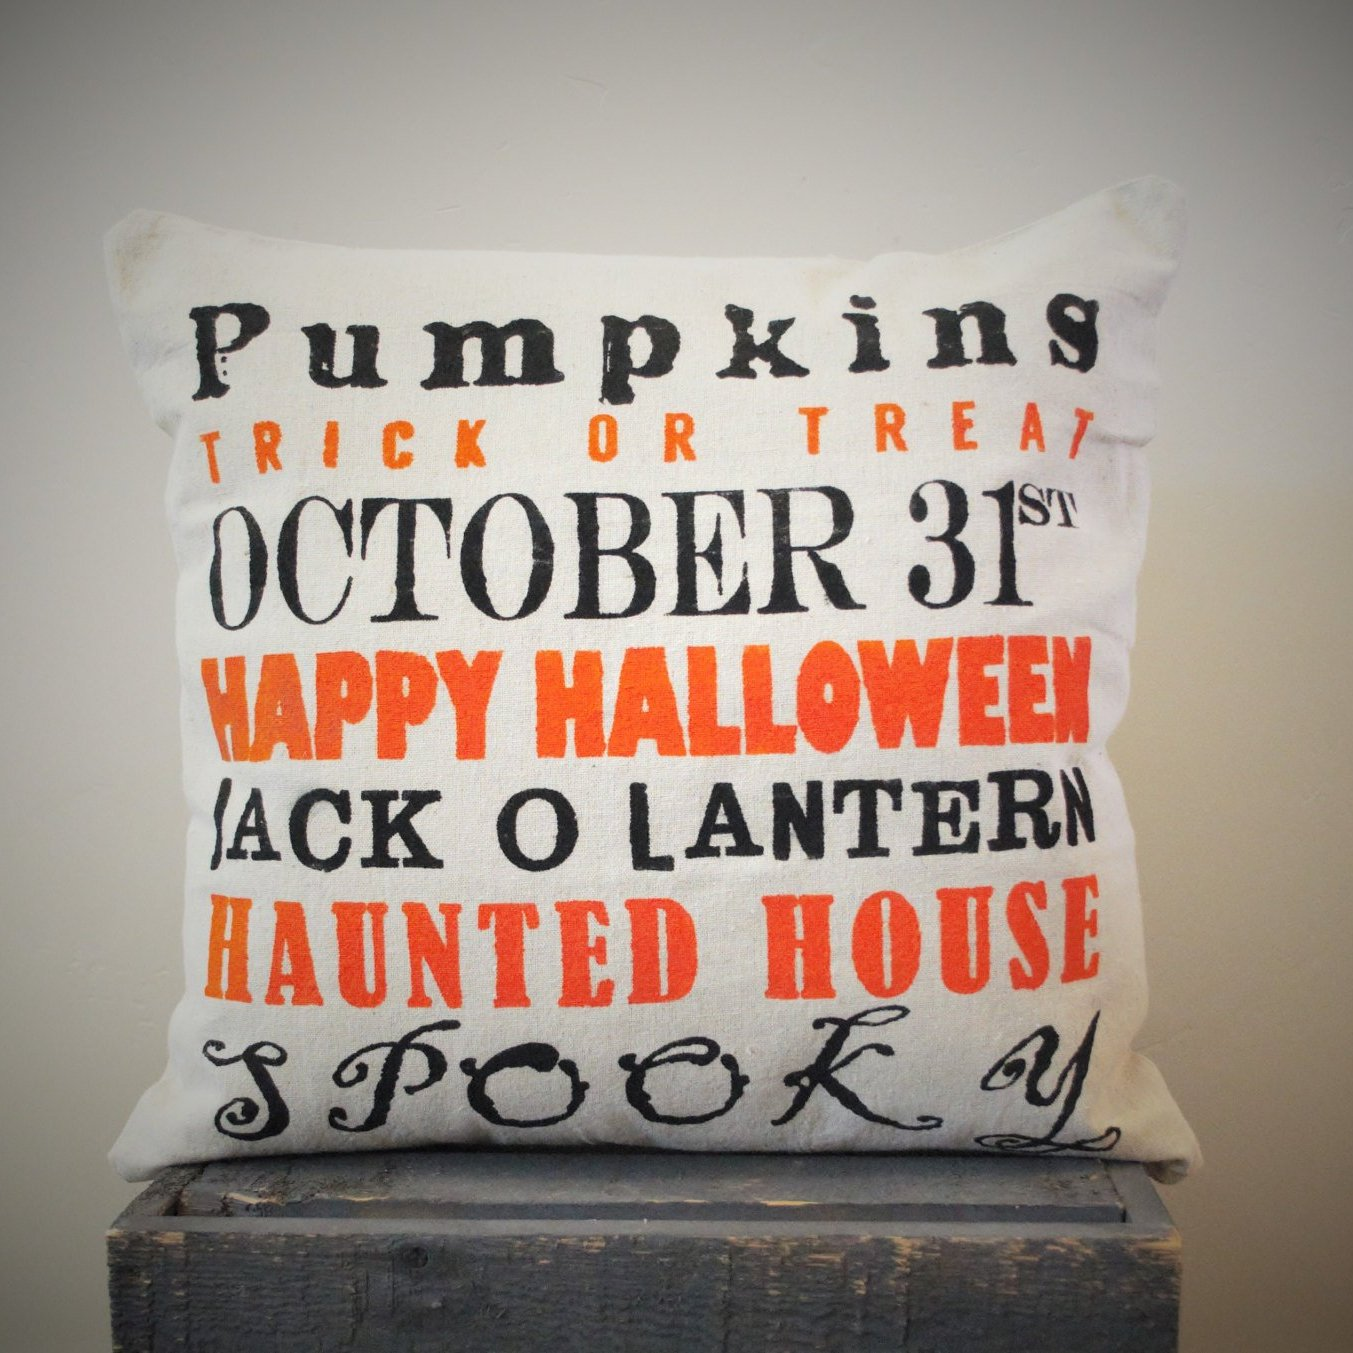 Halloween Pillow, Halloween Subway Art Pillow Cover, You Choose/ Customize Colors, Halloween Decor